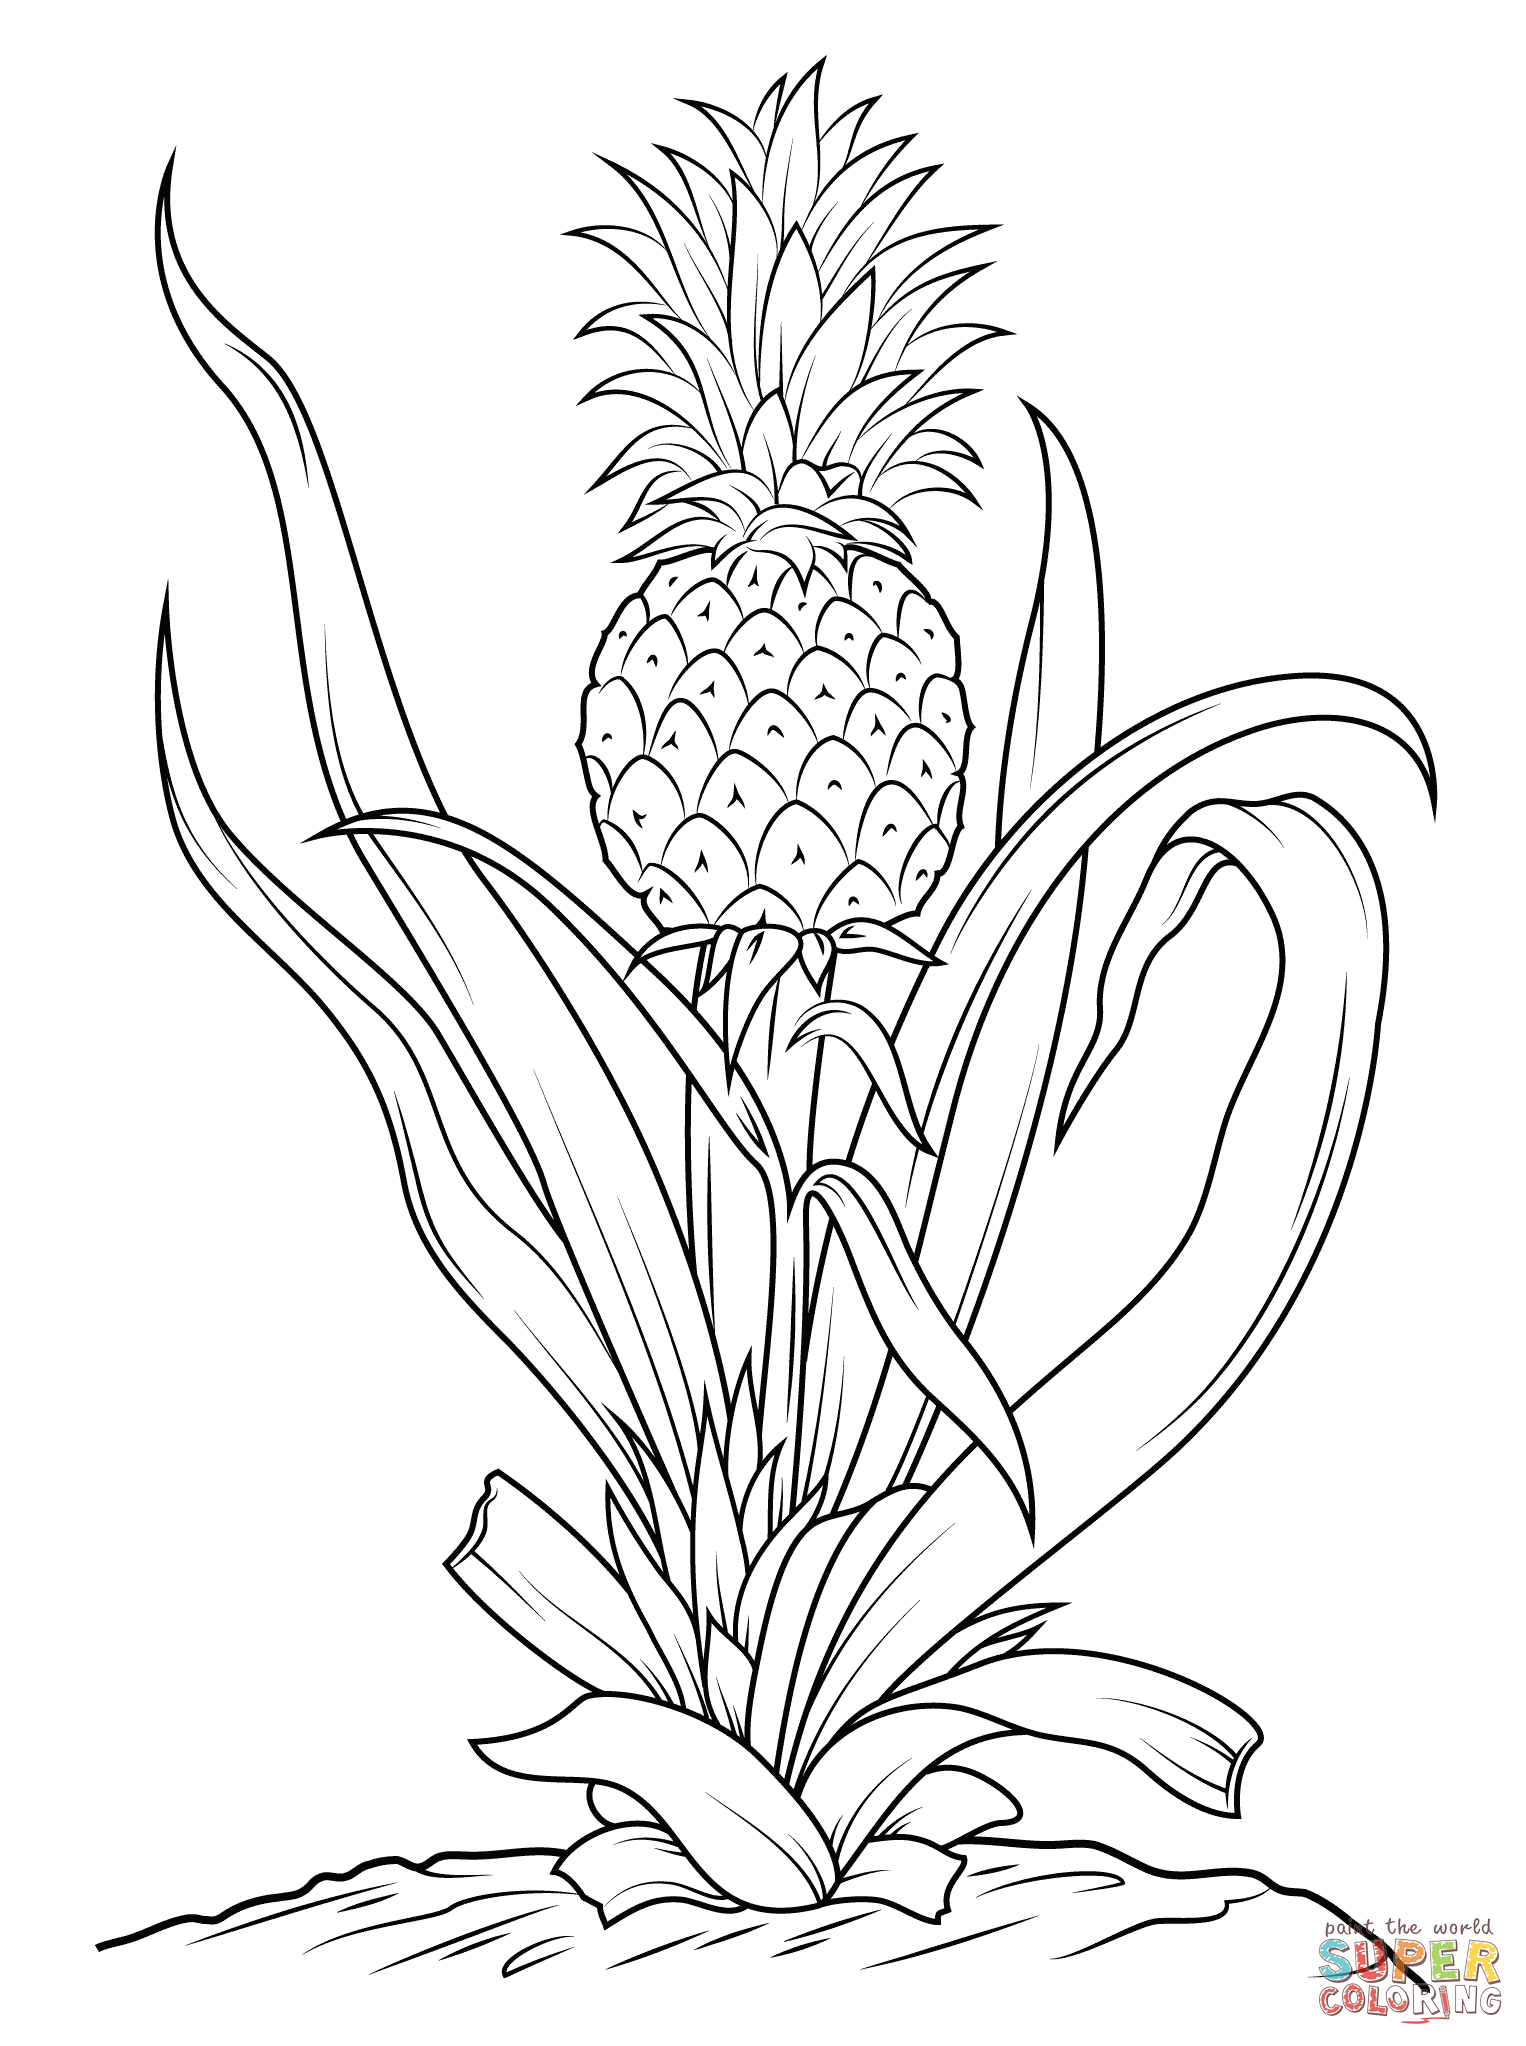 Click the Pineapple Pineapple drawing, Tree coloring